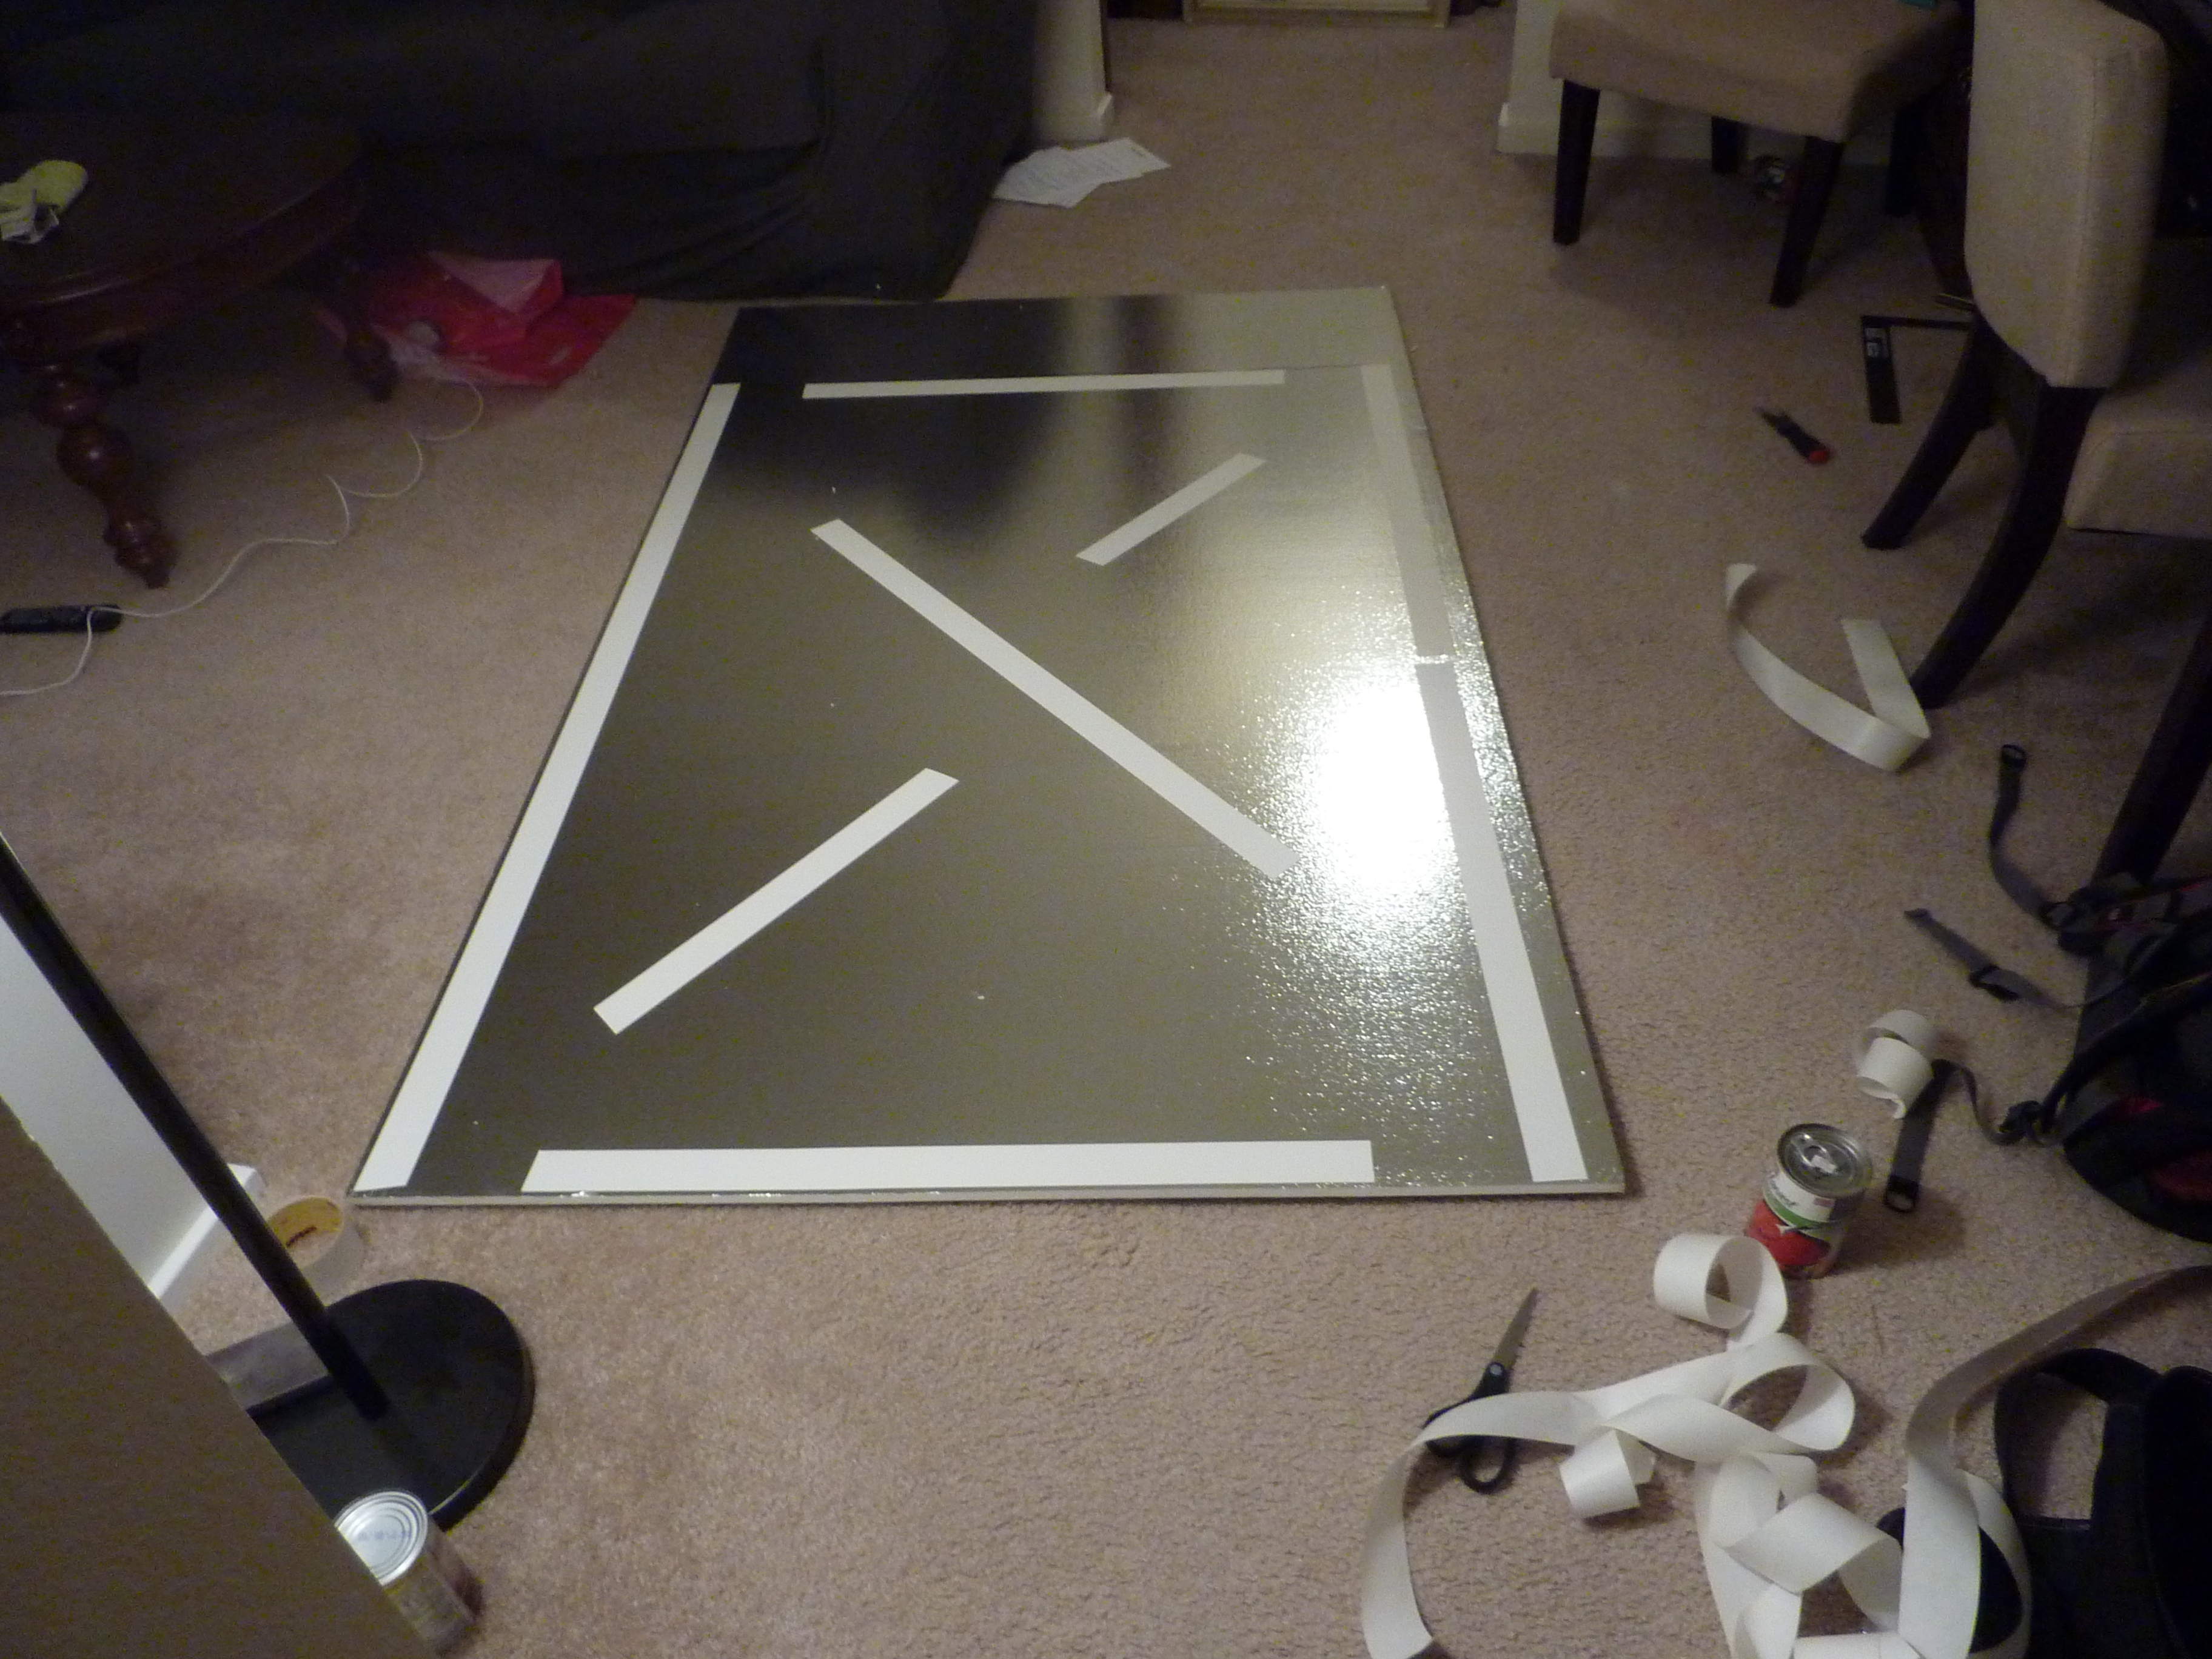 stick map to foam board with double stick tape